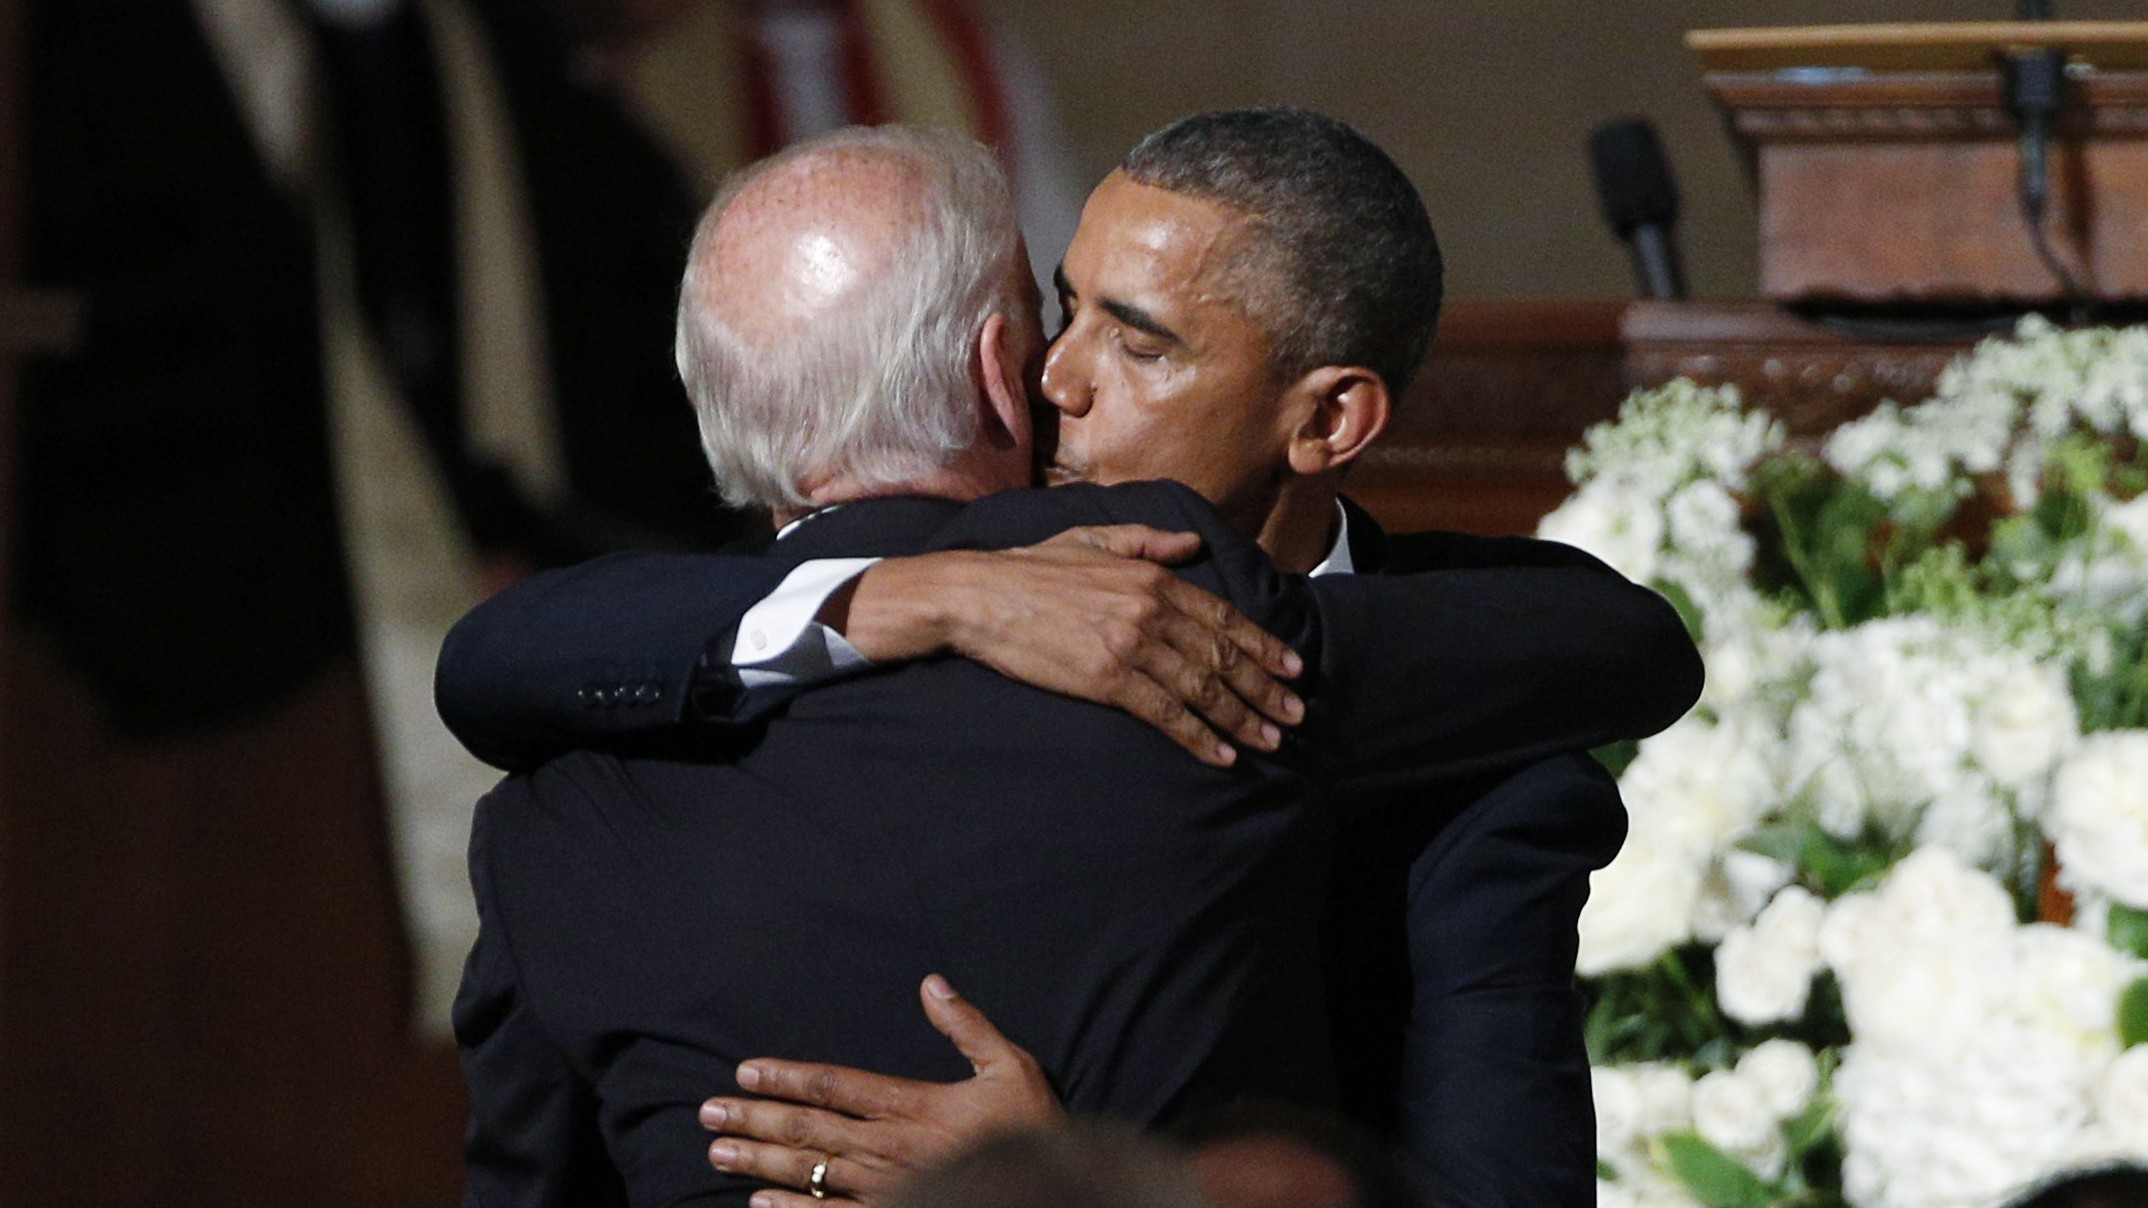 U.S. President Barack Obama kisses Vice President Joe Biden on the cheek as he hugs him after delivering the eulogy during the funeral of Biden's son, former Delaware Attorney General Beau Biden, at St. Anthony of Padua church in Wilimington, Delaware June 6, 2015.